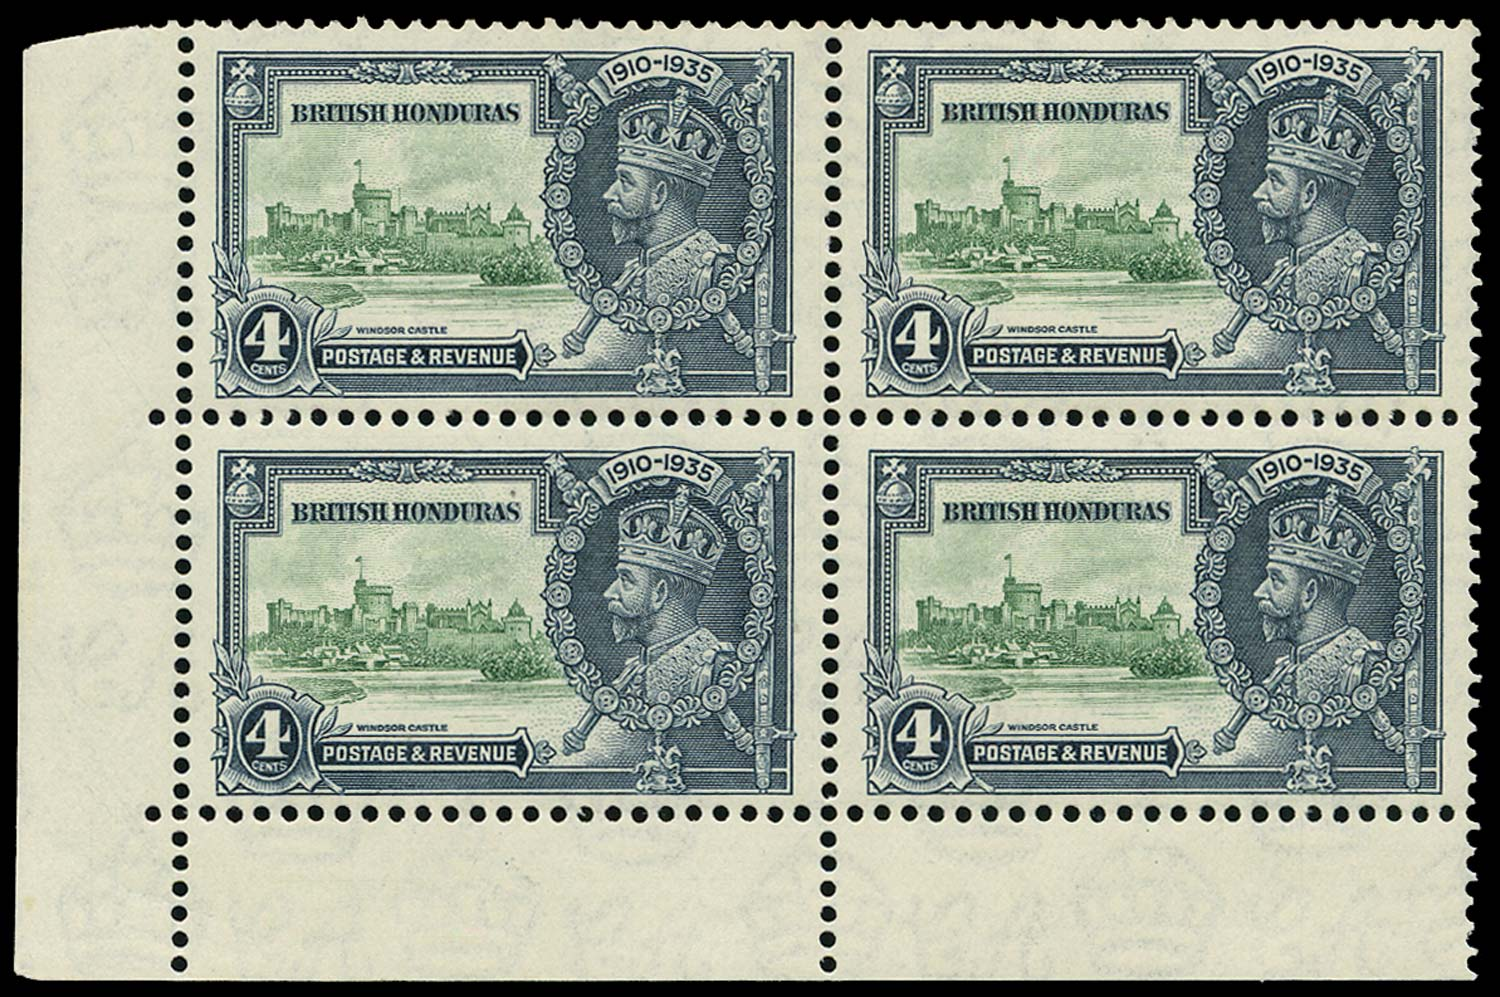 BRITISH HONDURAS 1935  SG144/a Mint Silver Jubilee 4c with Extra Flagstaff